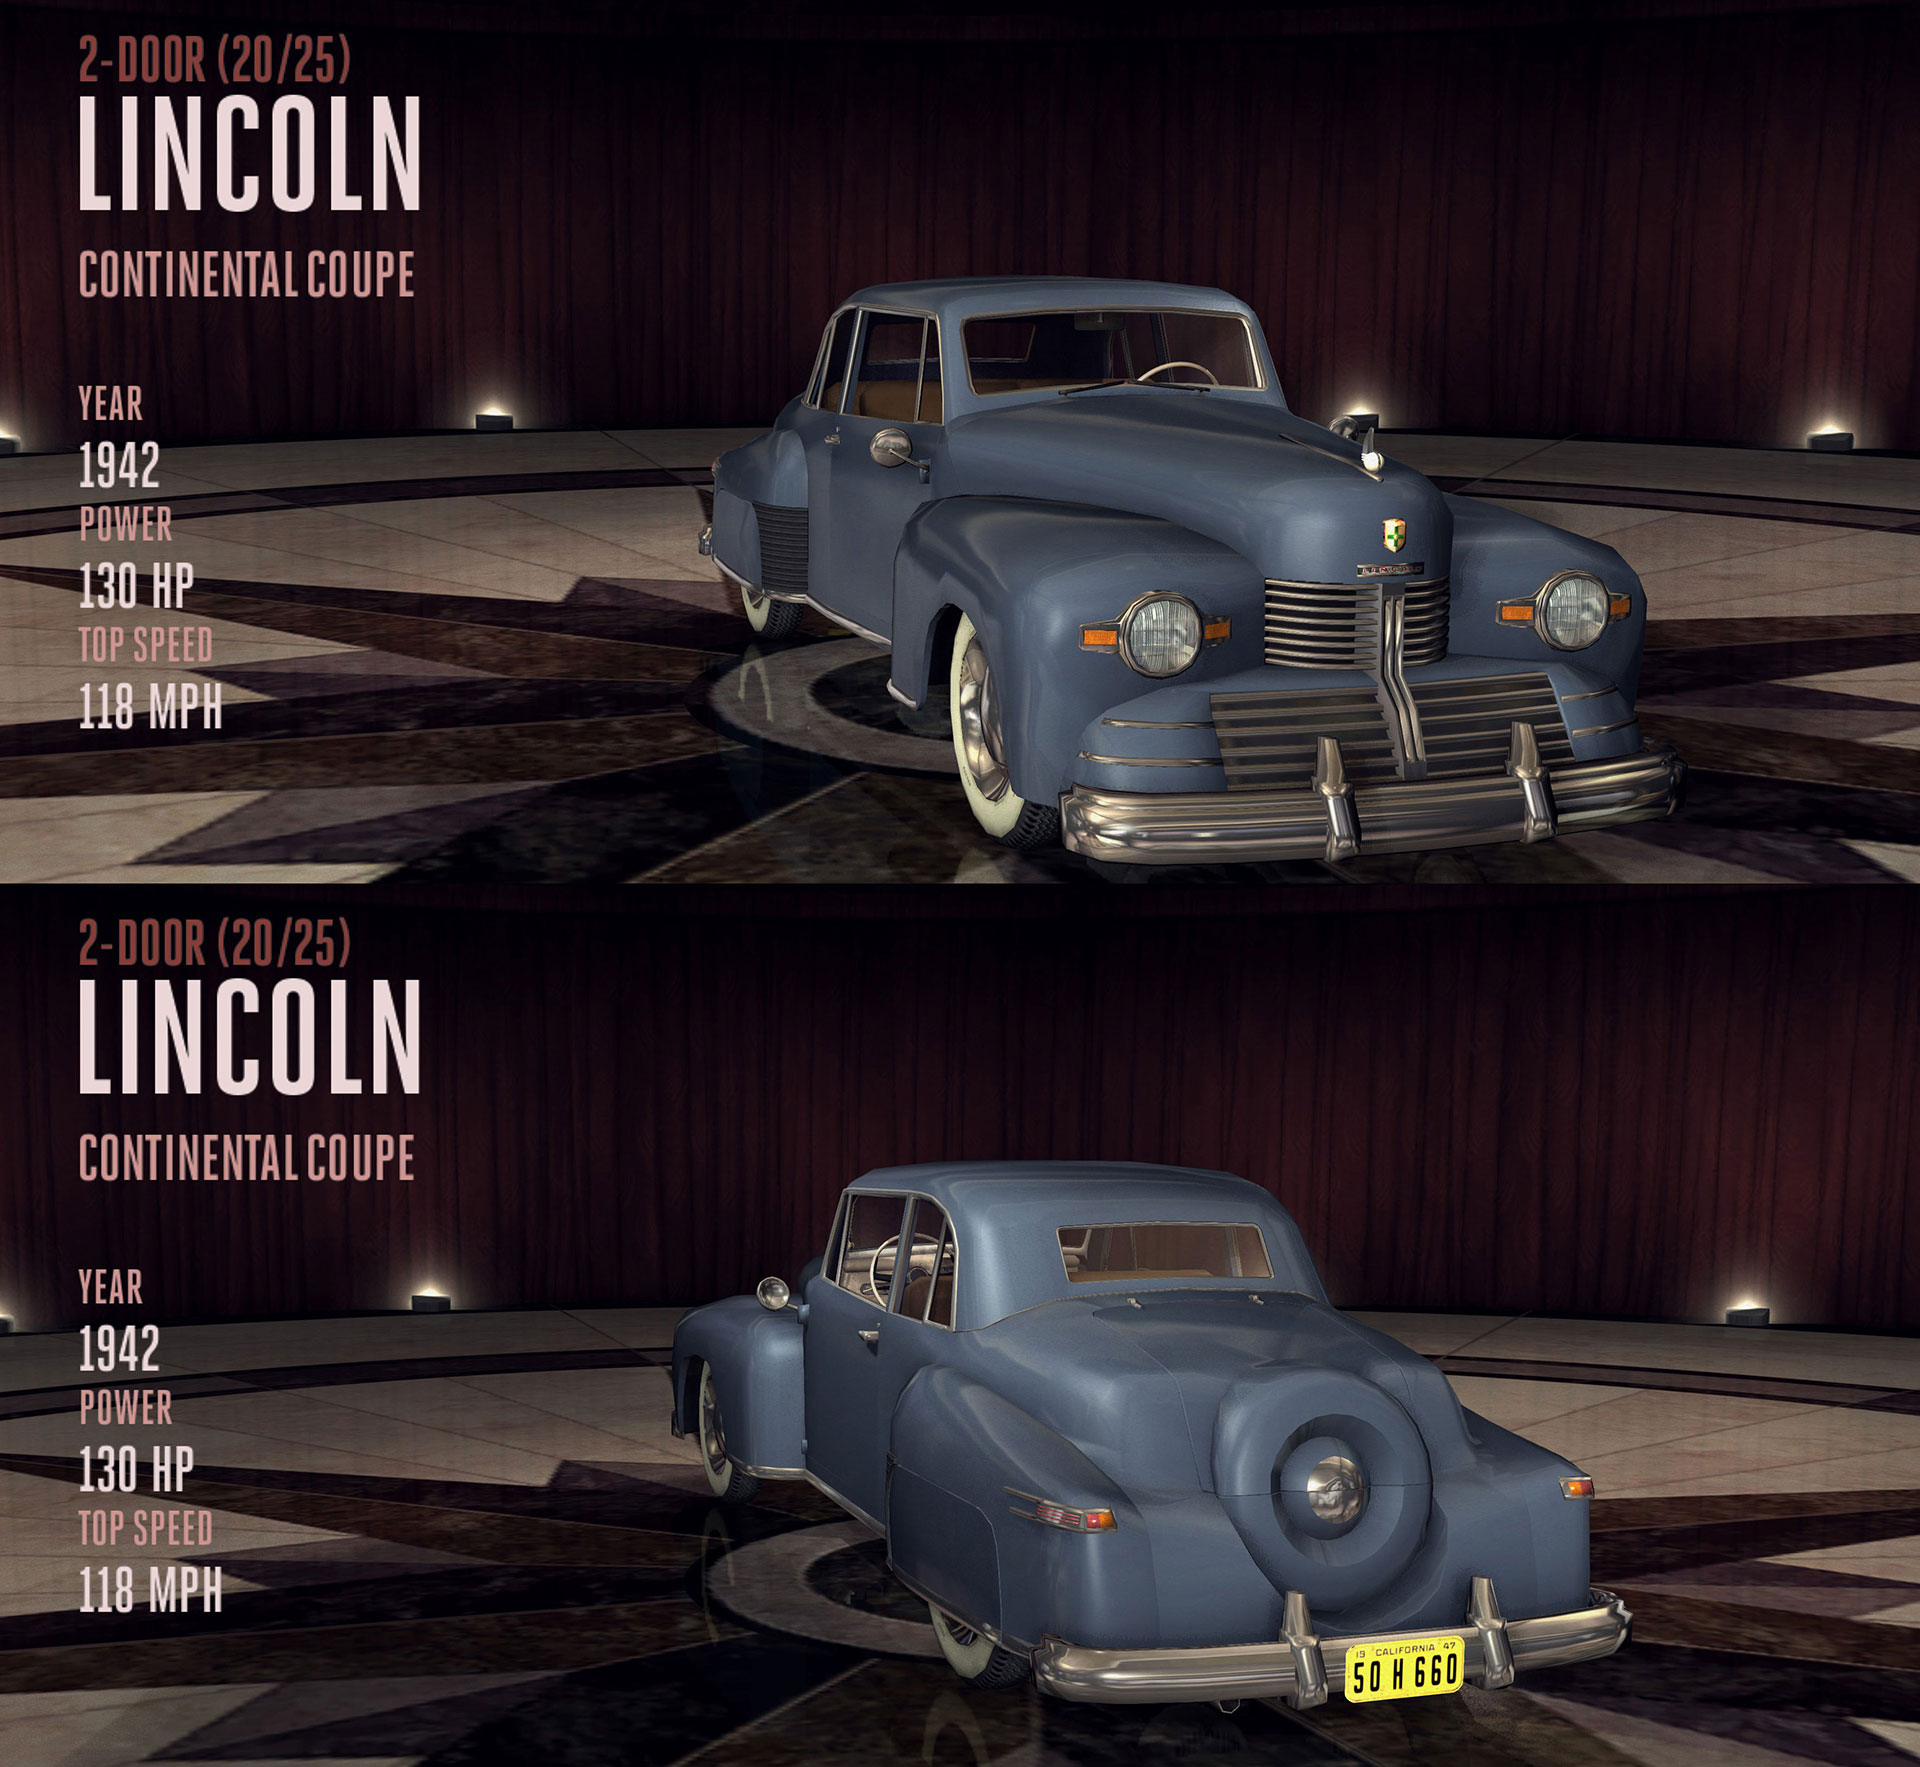 Archivo:1942-lincoln-continental-coupe.jpg